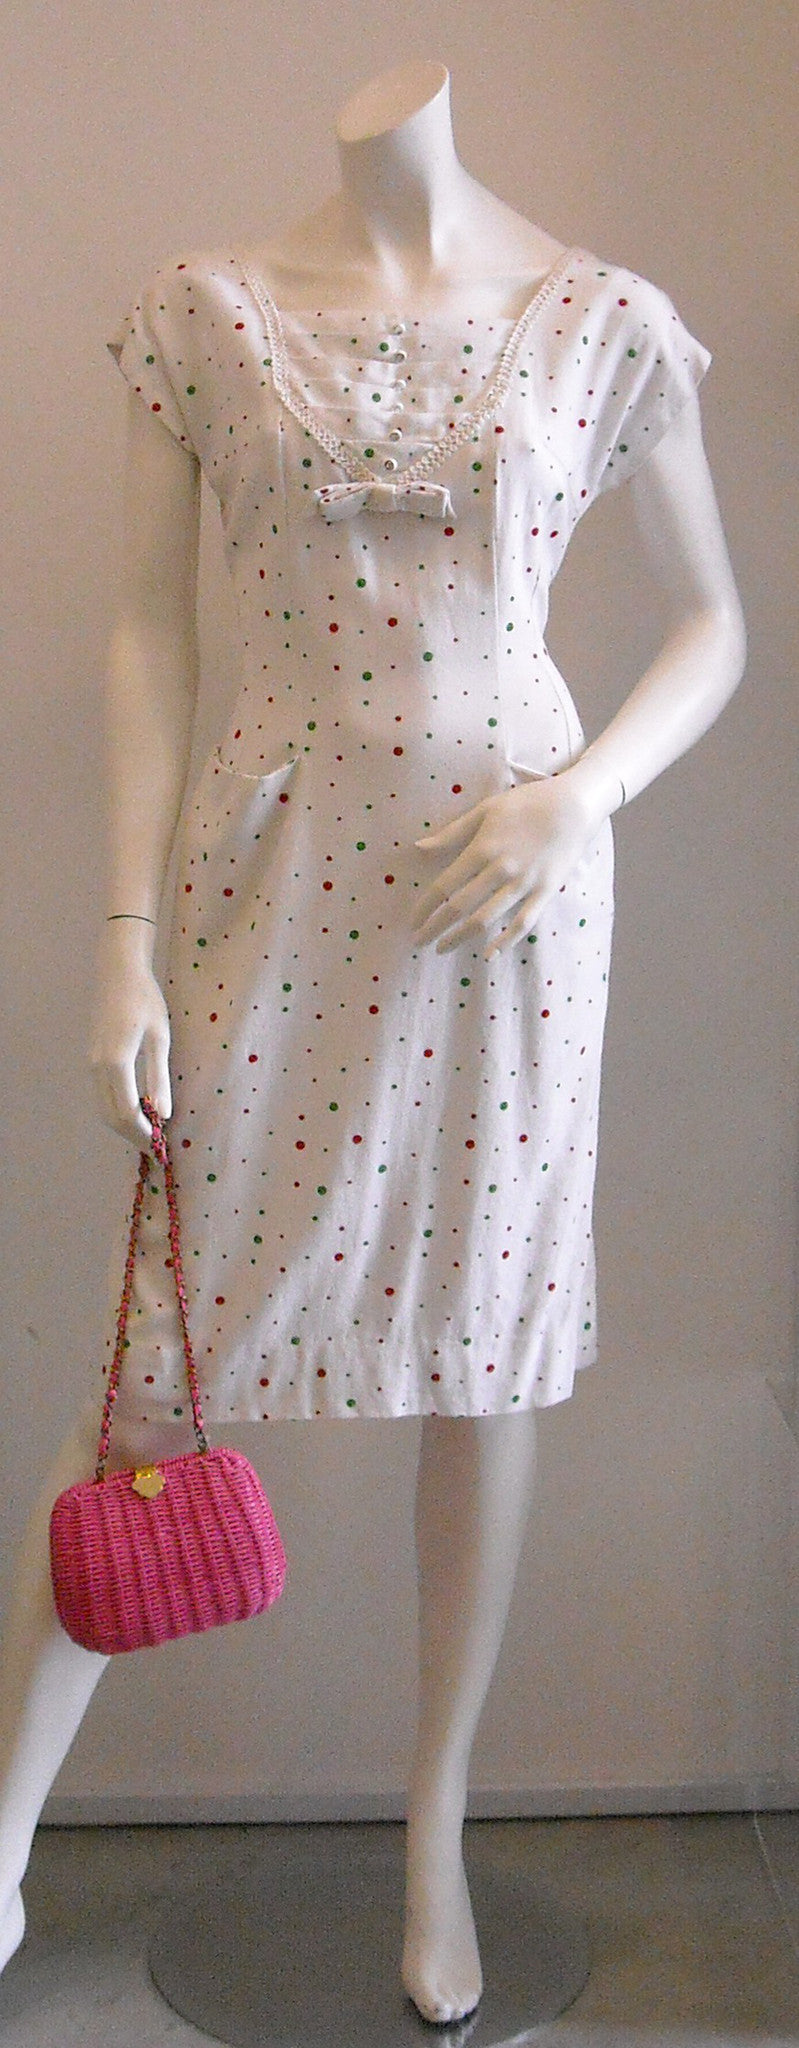 Colorful Bubbling Polka Dots Structured Vintage Dress